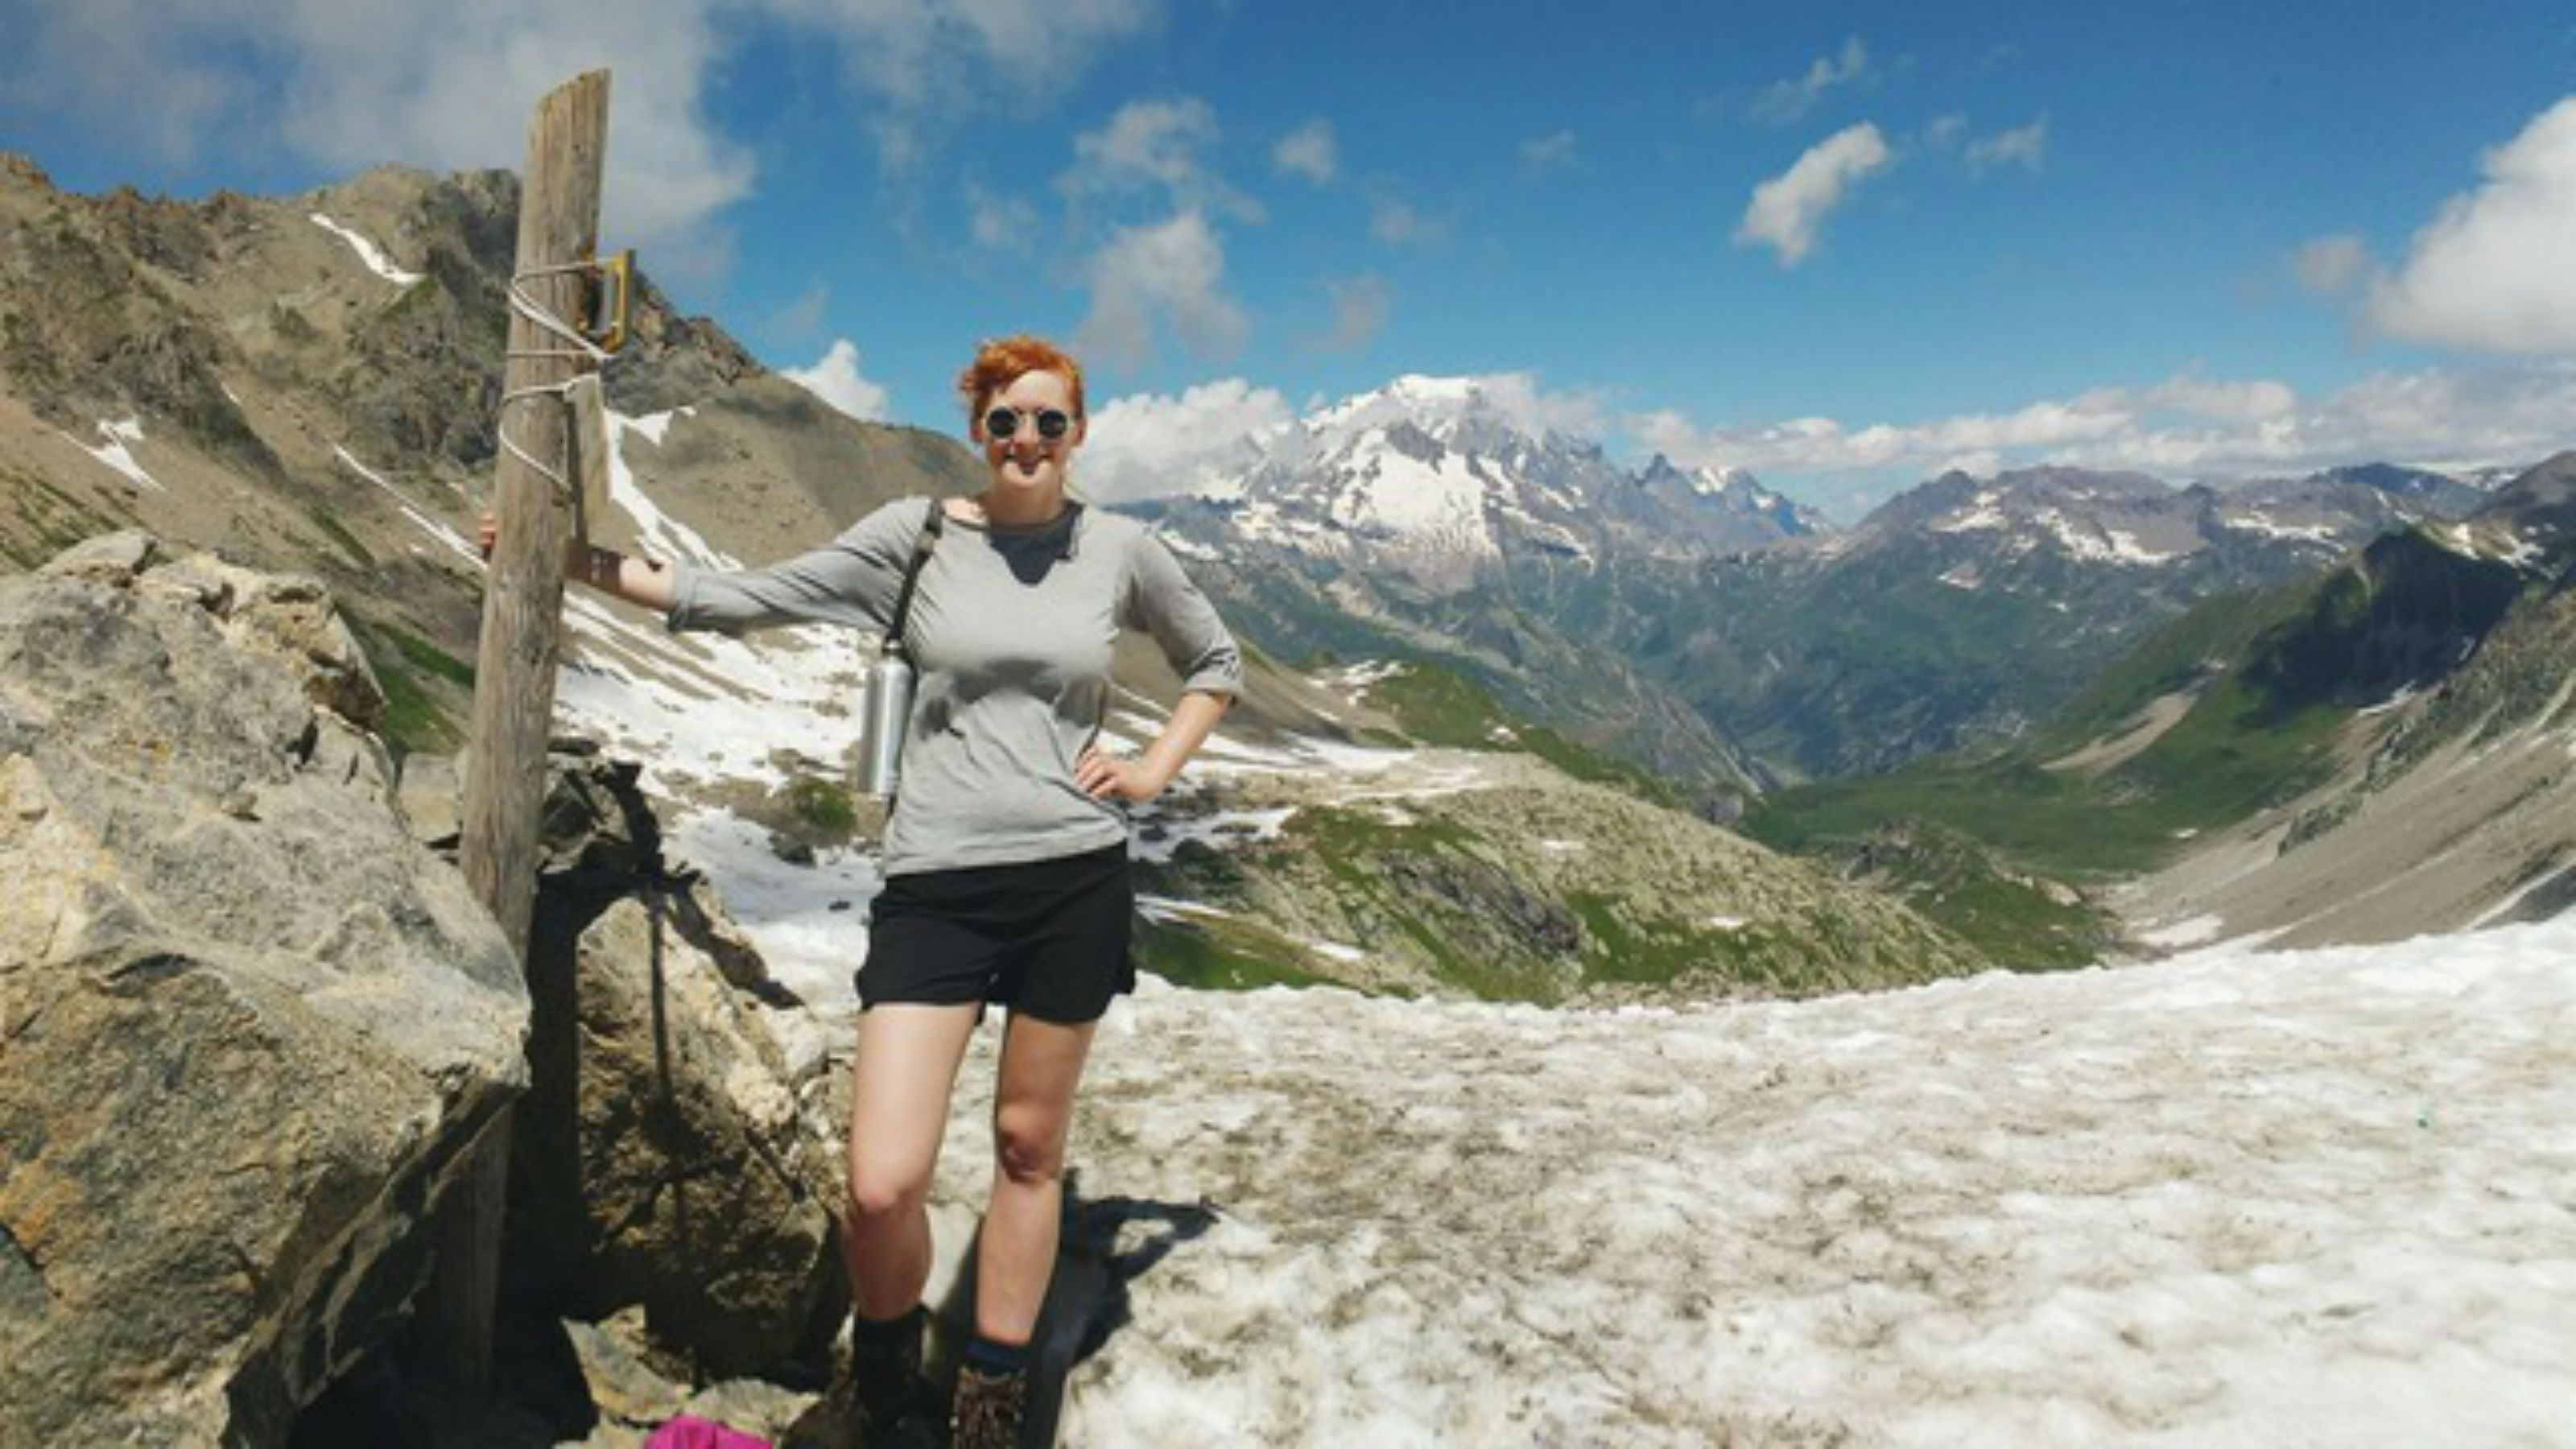 PhD candidate, Florence Isaacs stands next to a wooden box in the French Alps, with mountain scenery behind her